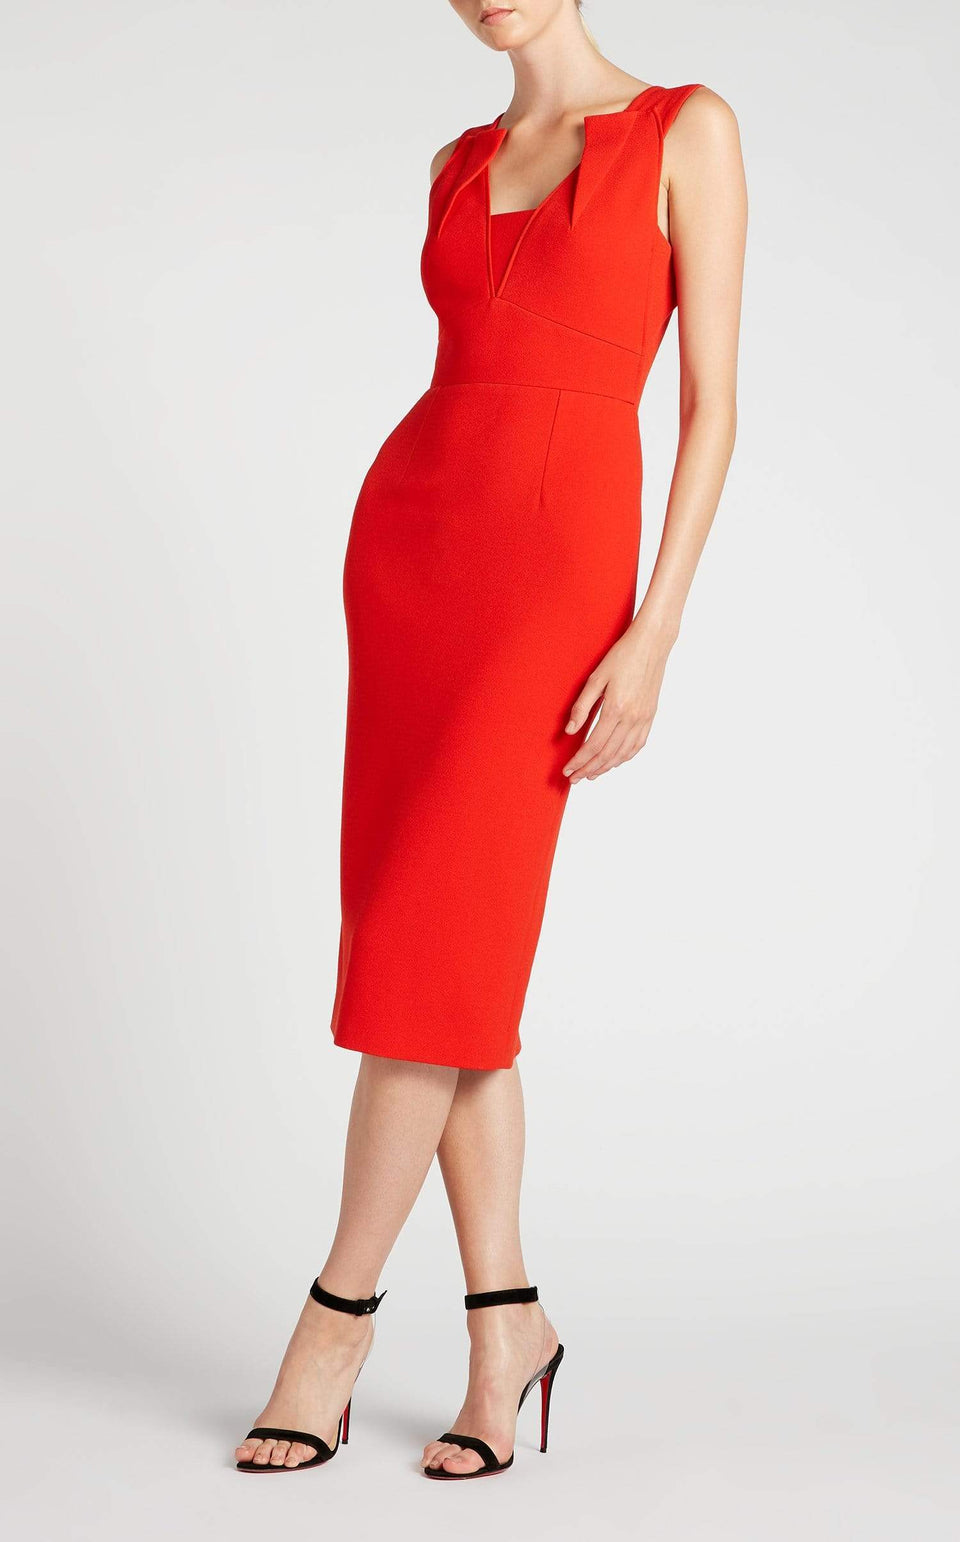 Coleby Dress In Poppy Red from Roland Mouret